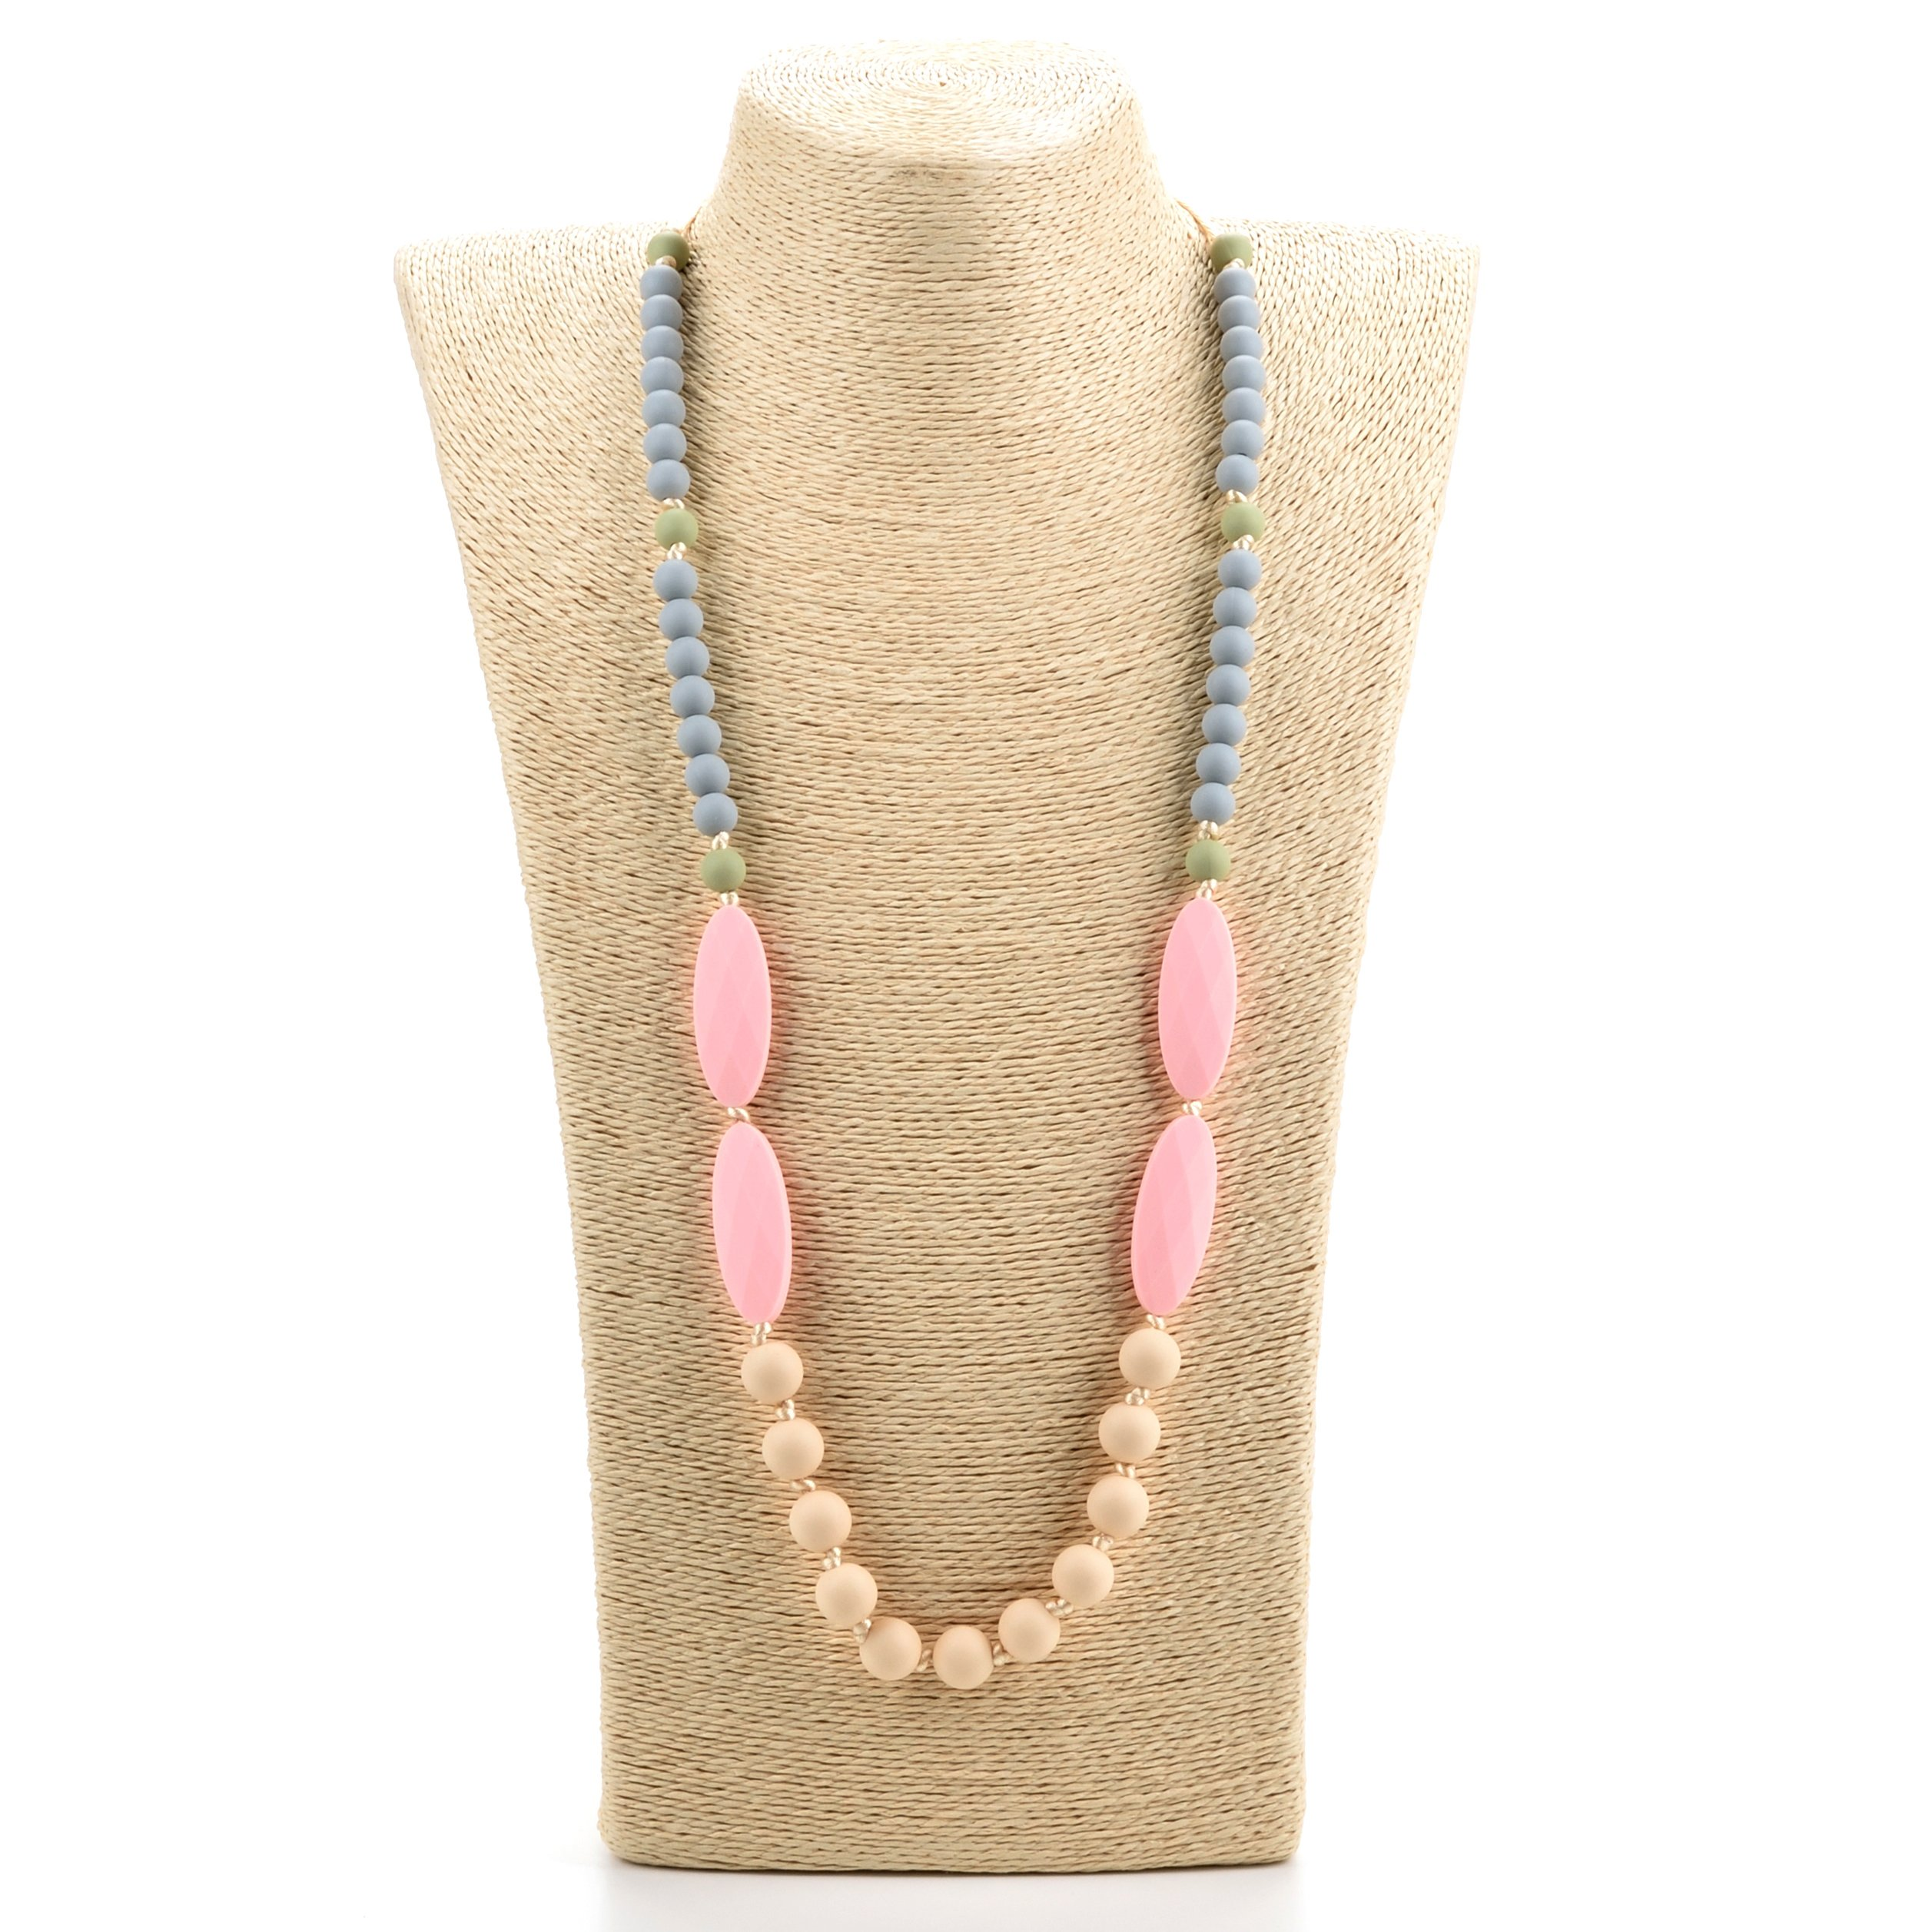 Lofca Baby Toys Silicone Teething Necklace for Mom to Wear-BPA Free -Anti Flammatory,Drooling , Teething Pain Reduce Properties-Nursing Necklace Perfect for Breastfeeding Moms-'Ina'(Rose Quartz)